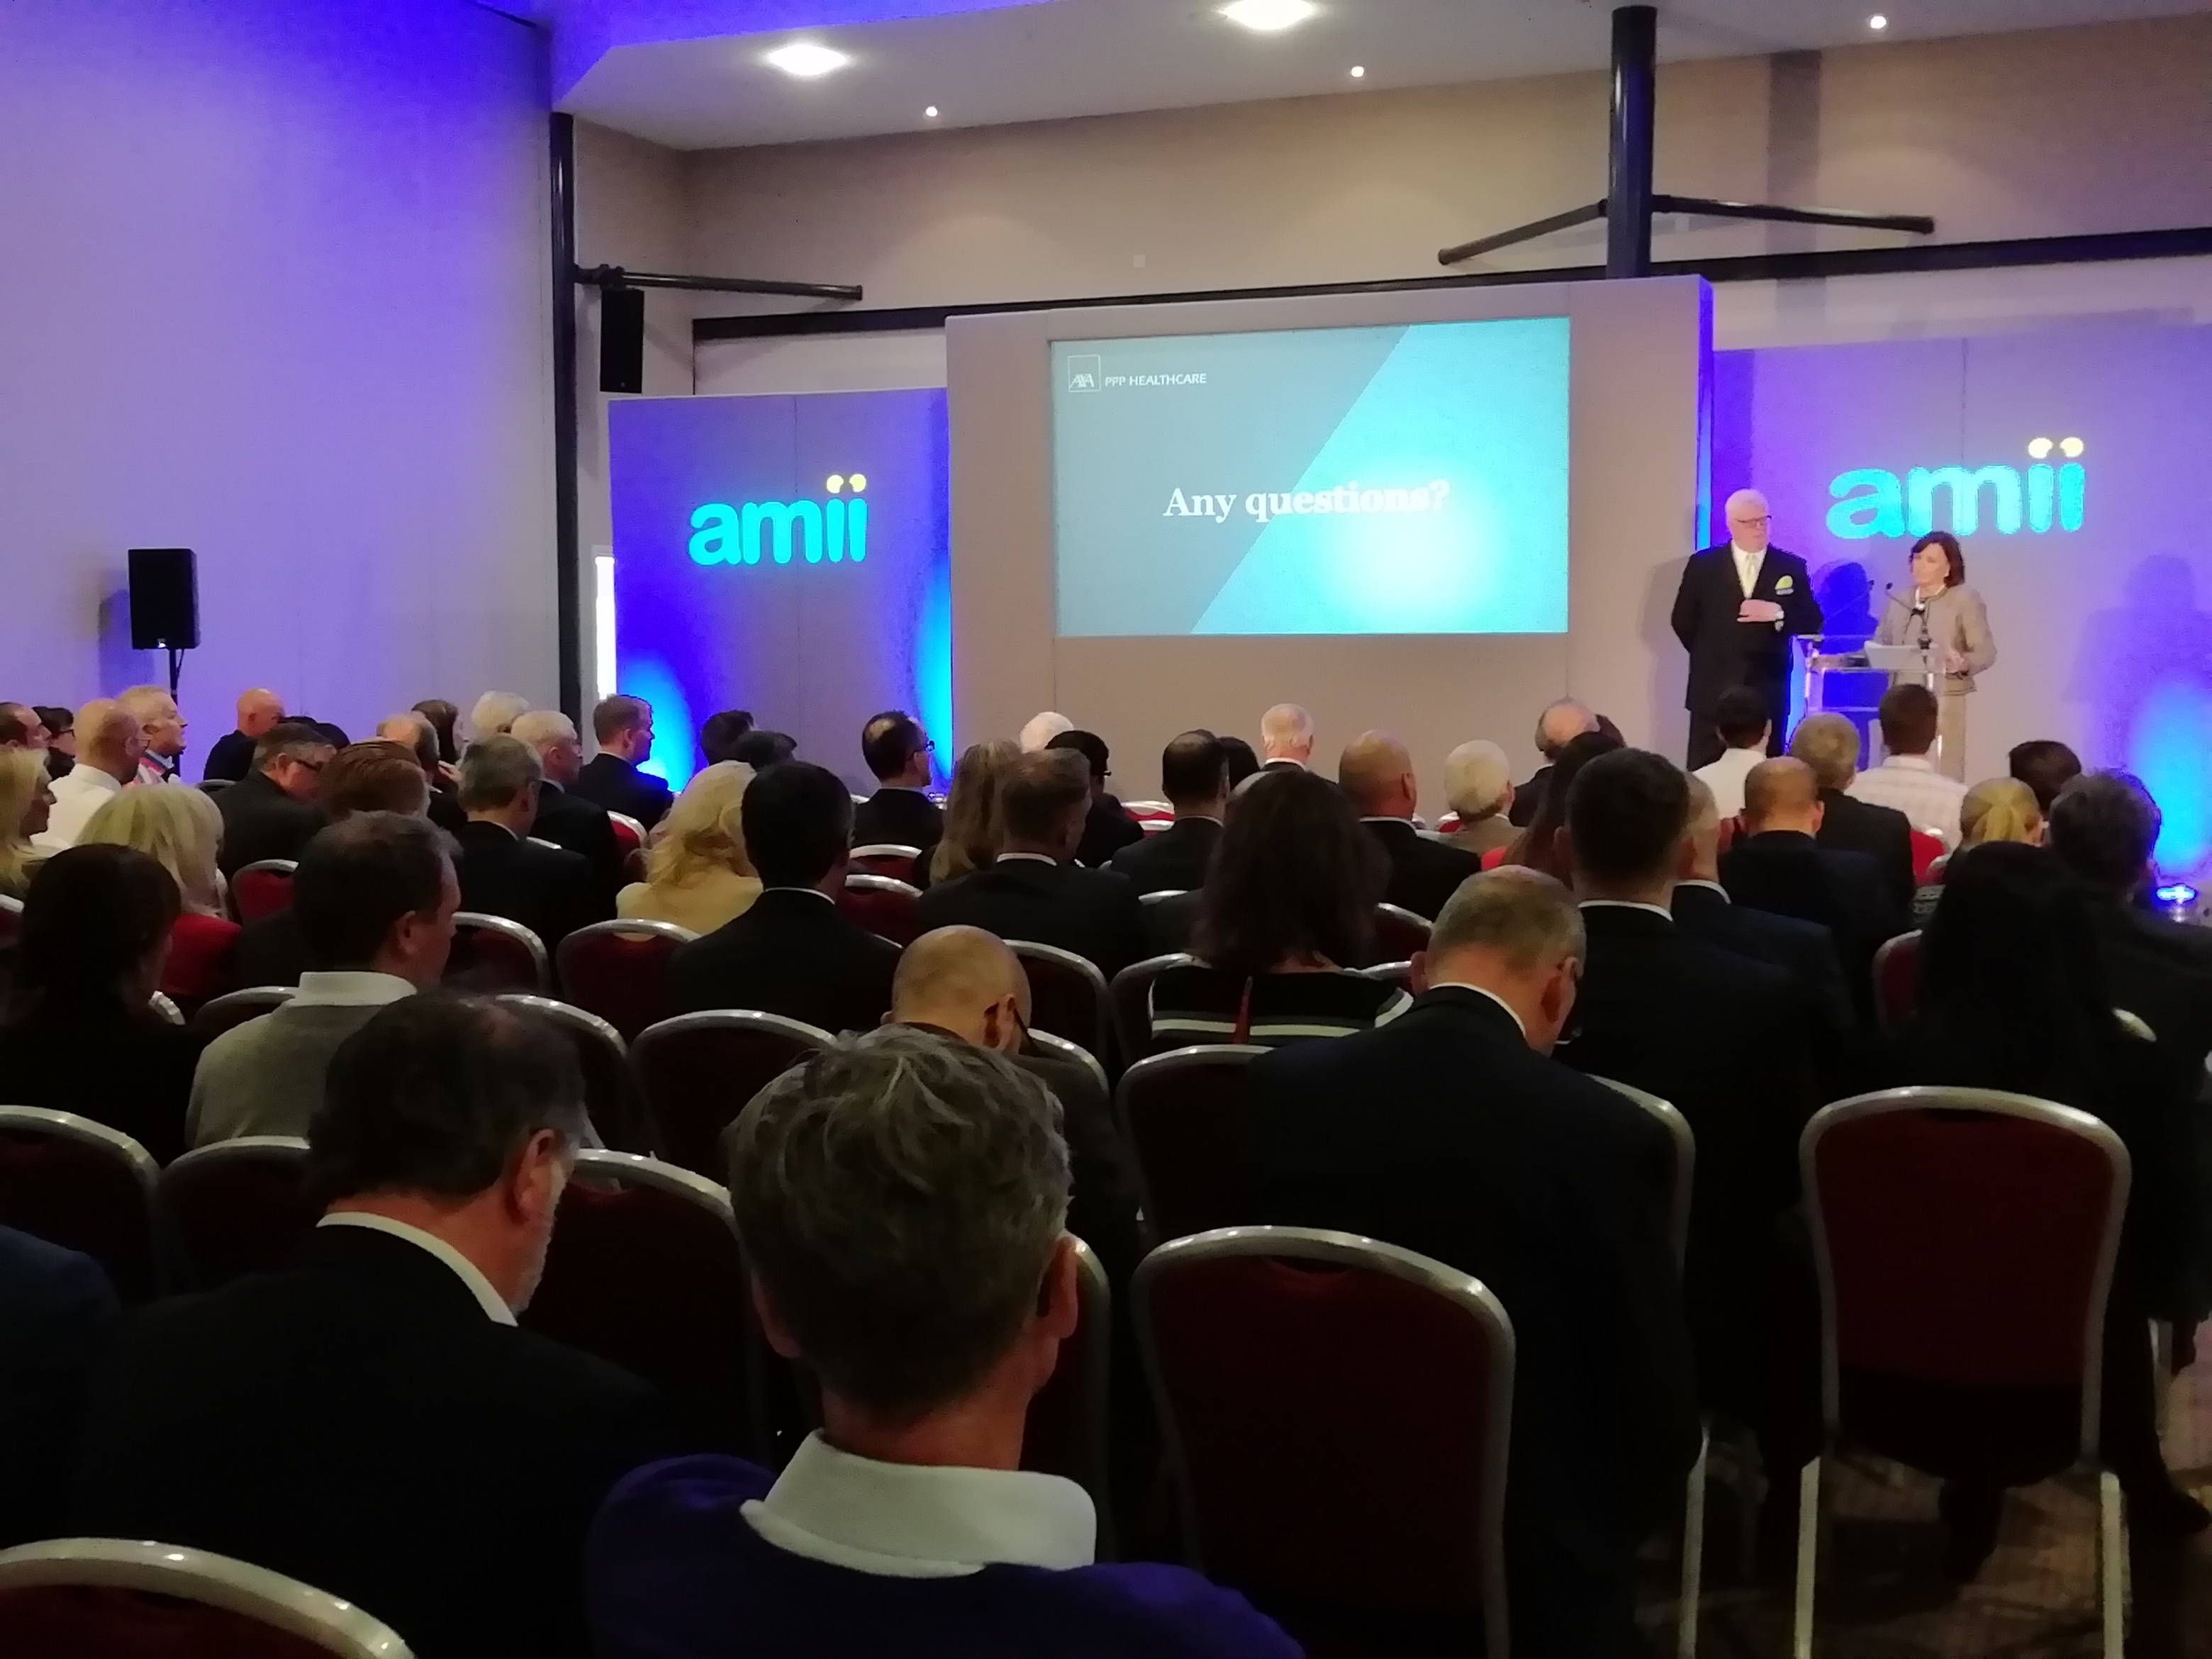 'The future of the healthcare industry is now' – AMII AGM told